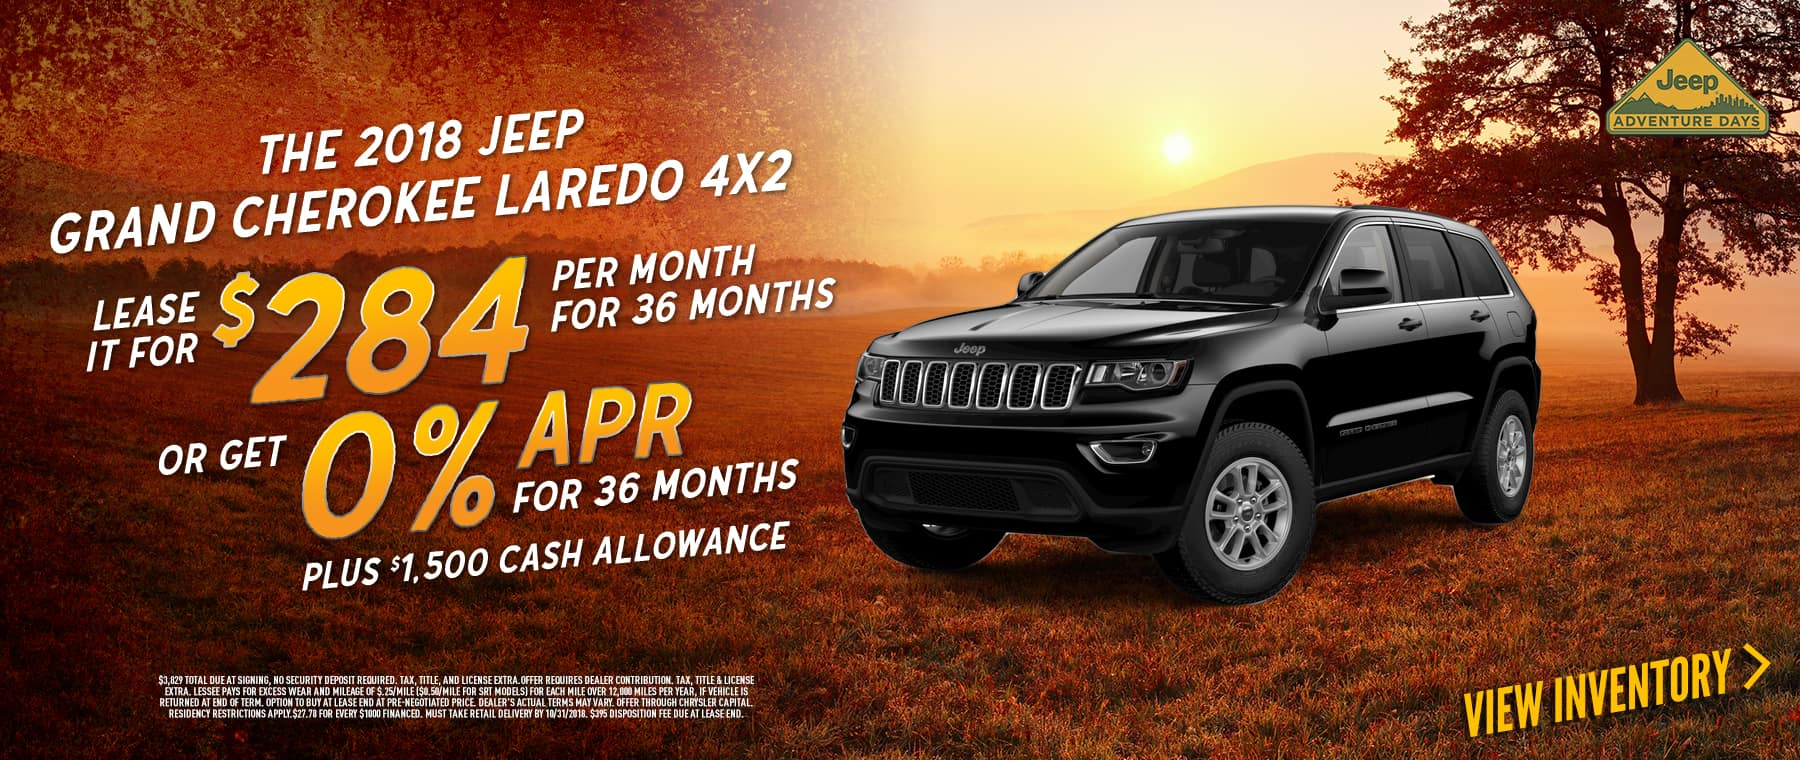 lease-2018-jeep-grand-cherokee-laredo-for-284-per-month